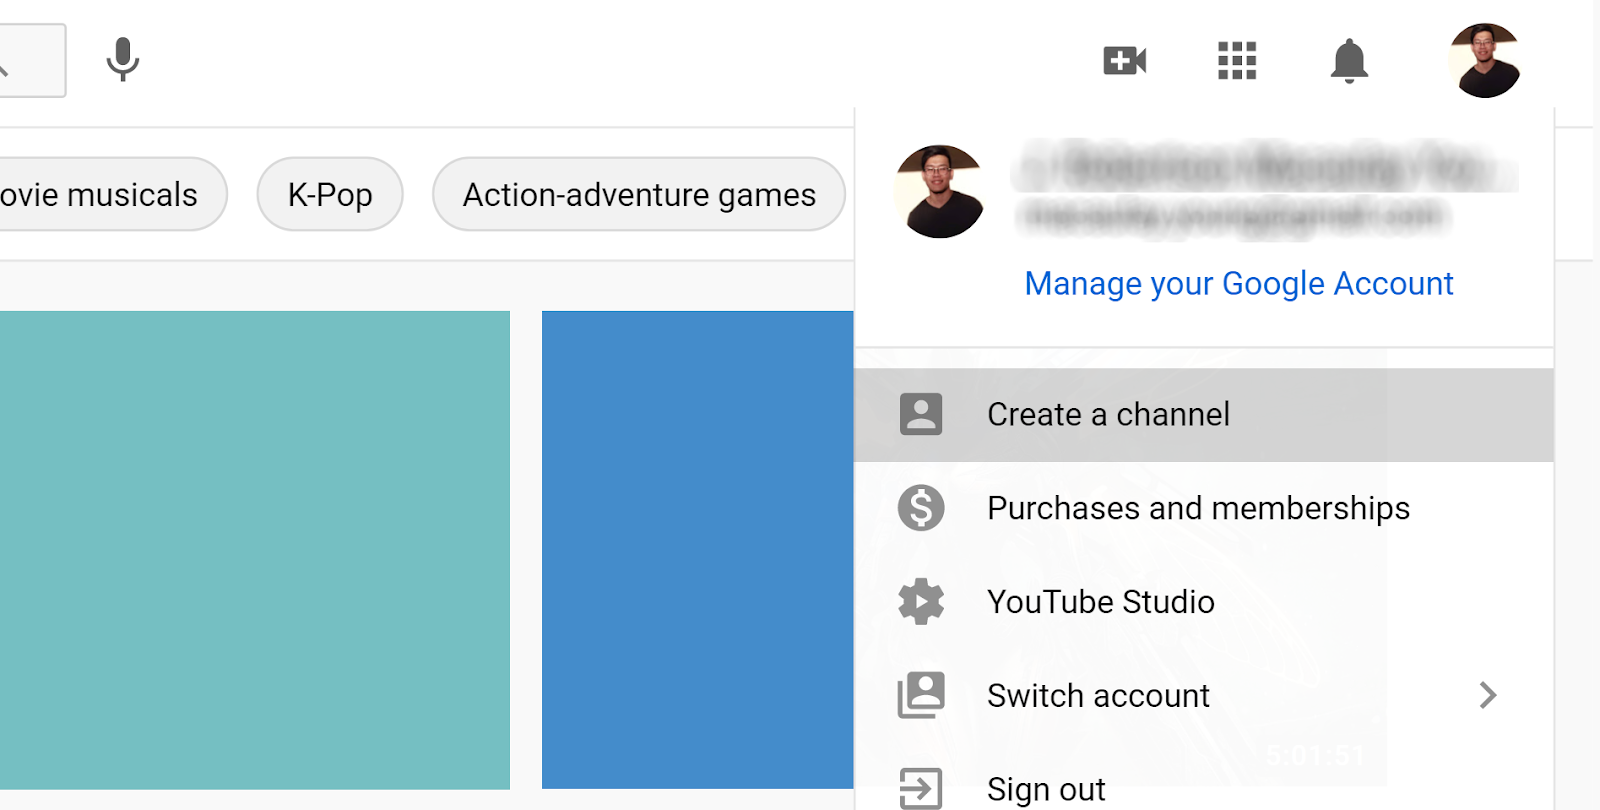 Dropdown to create a YouTube channel